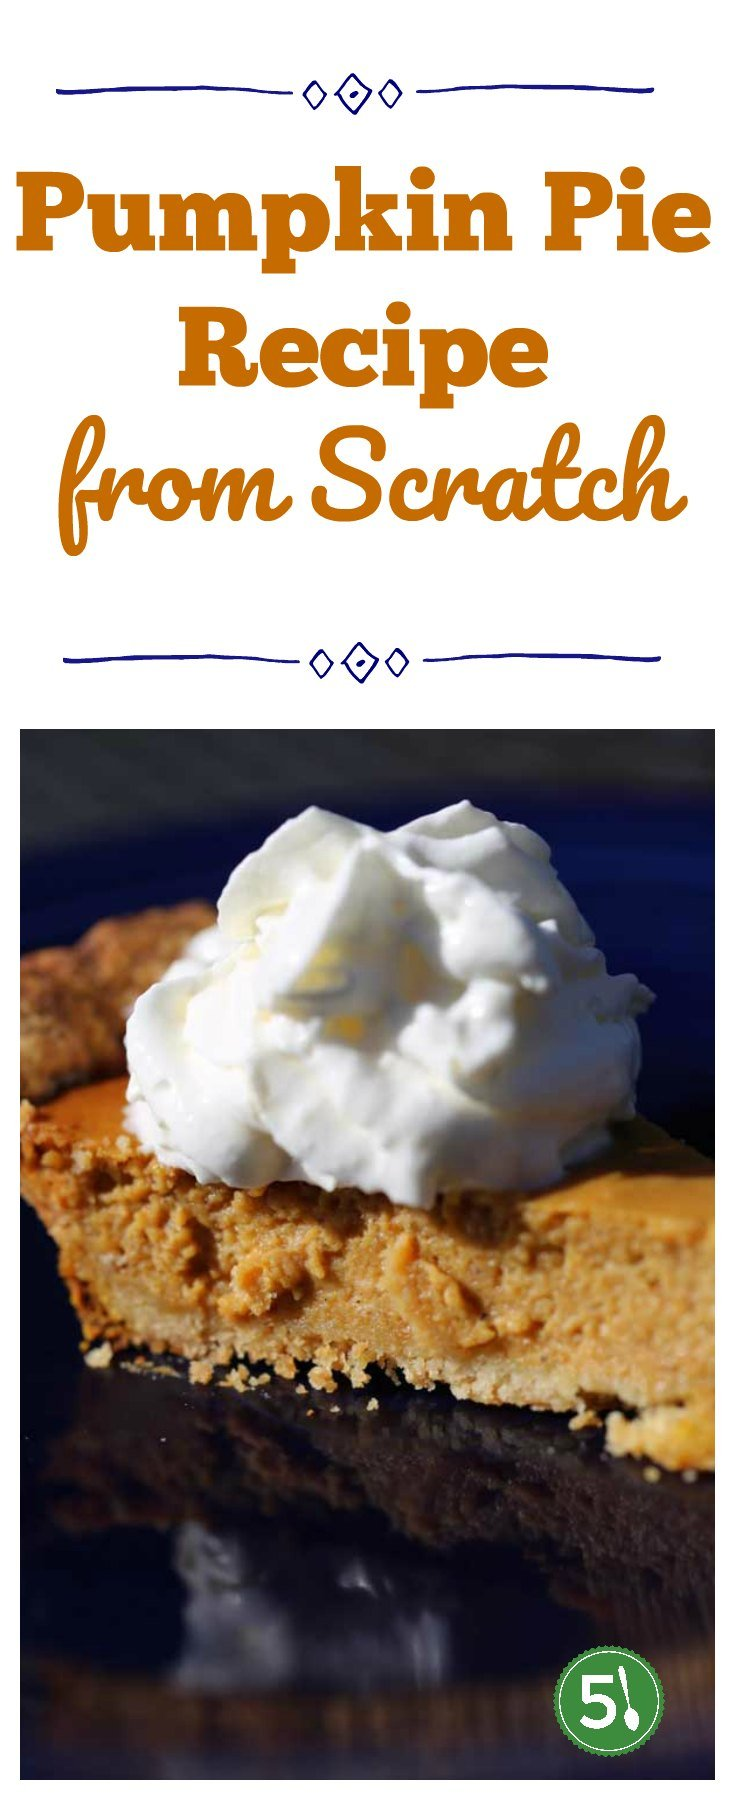 Pumpkin pie recipe from scratch from Flour Bakery.  Homemade pie crust recipe included as well.  SO delicious.